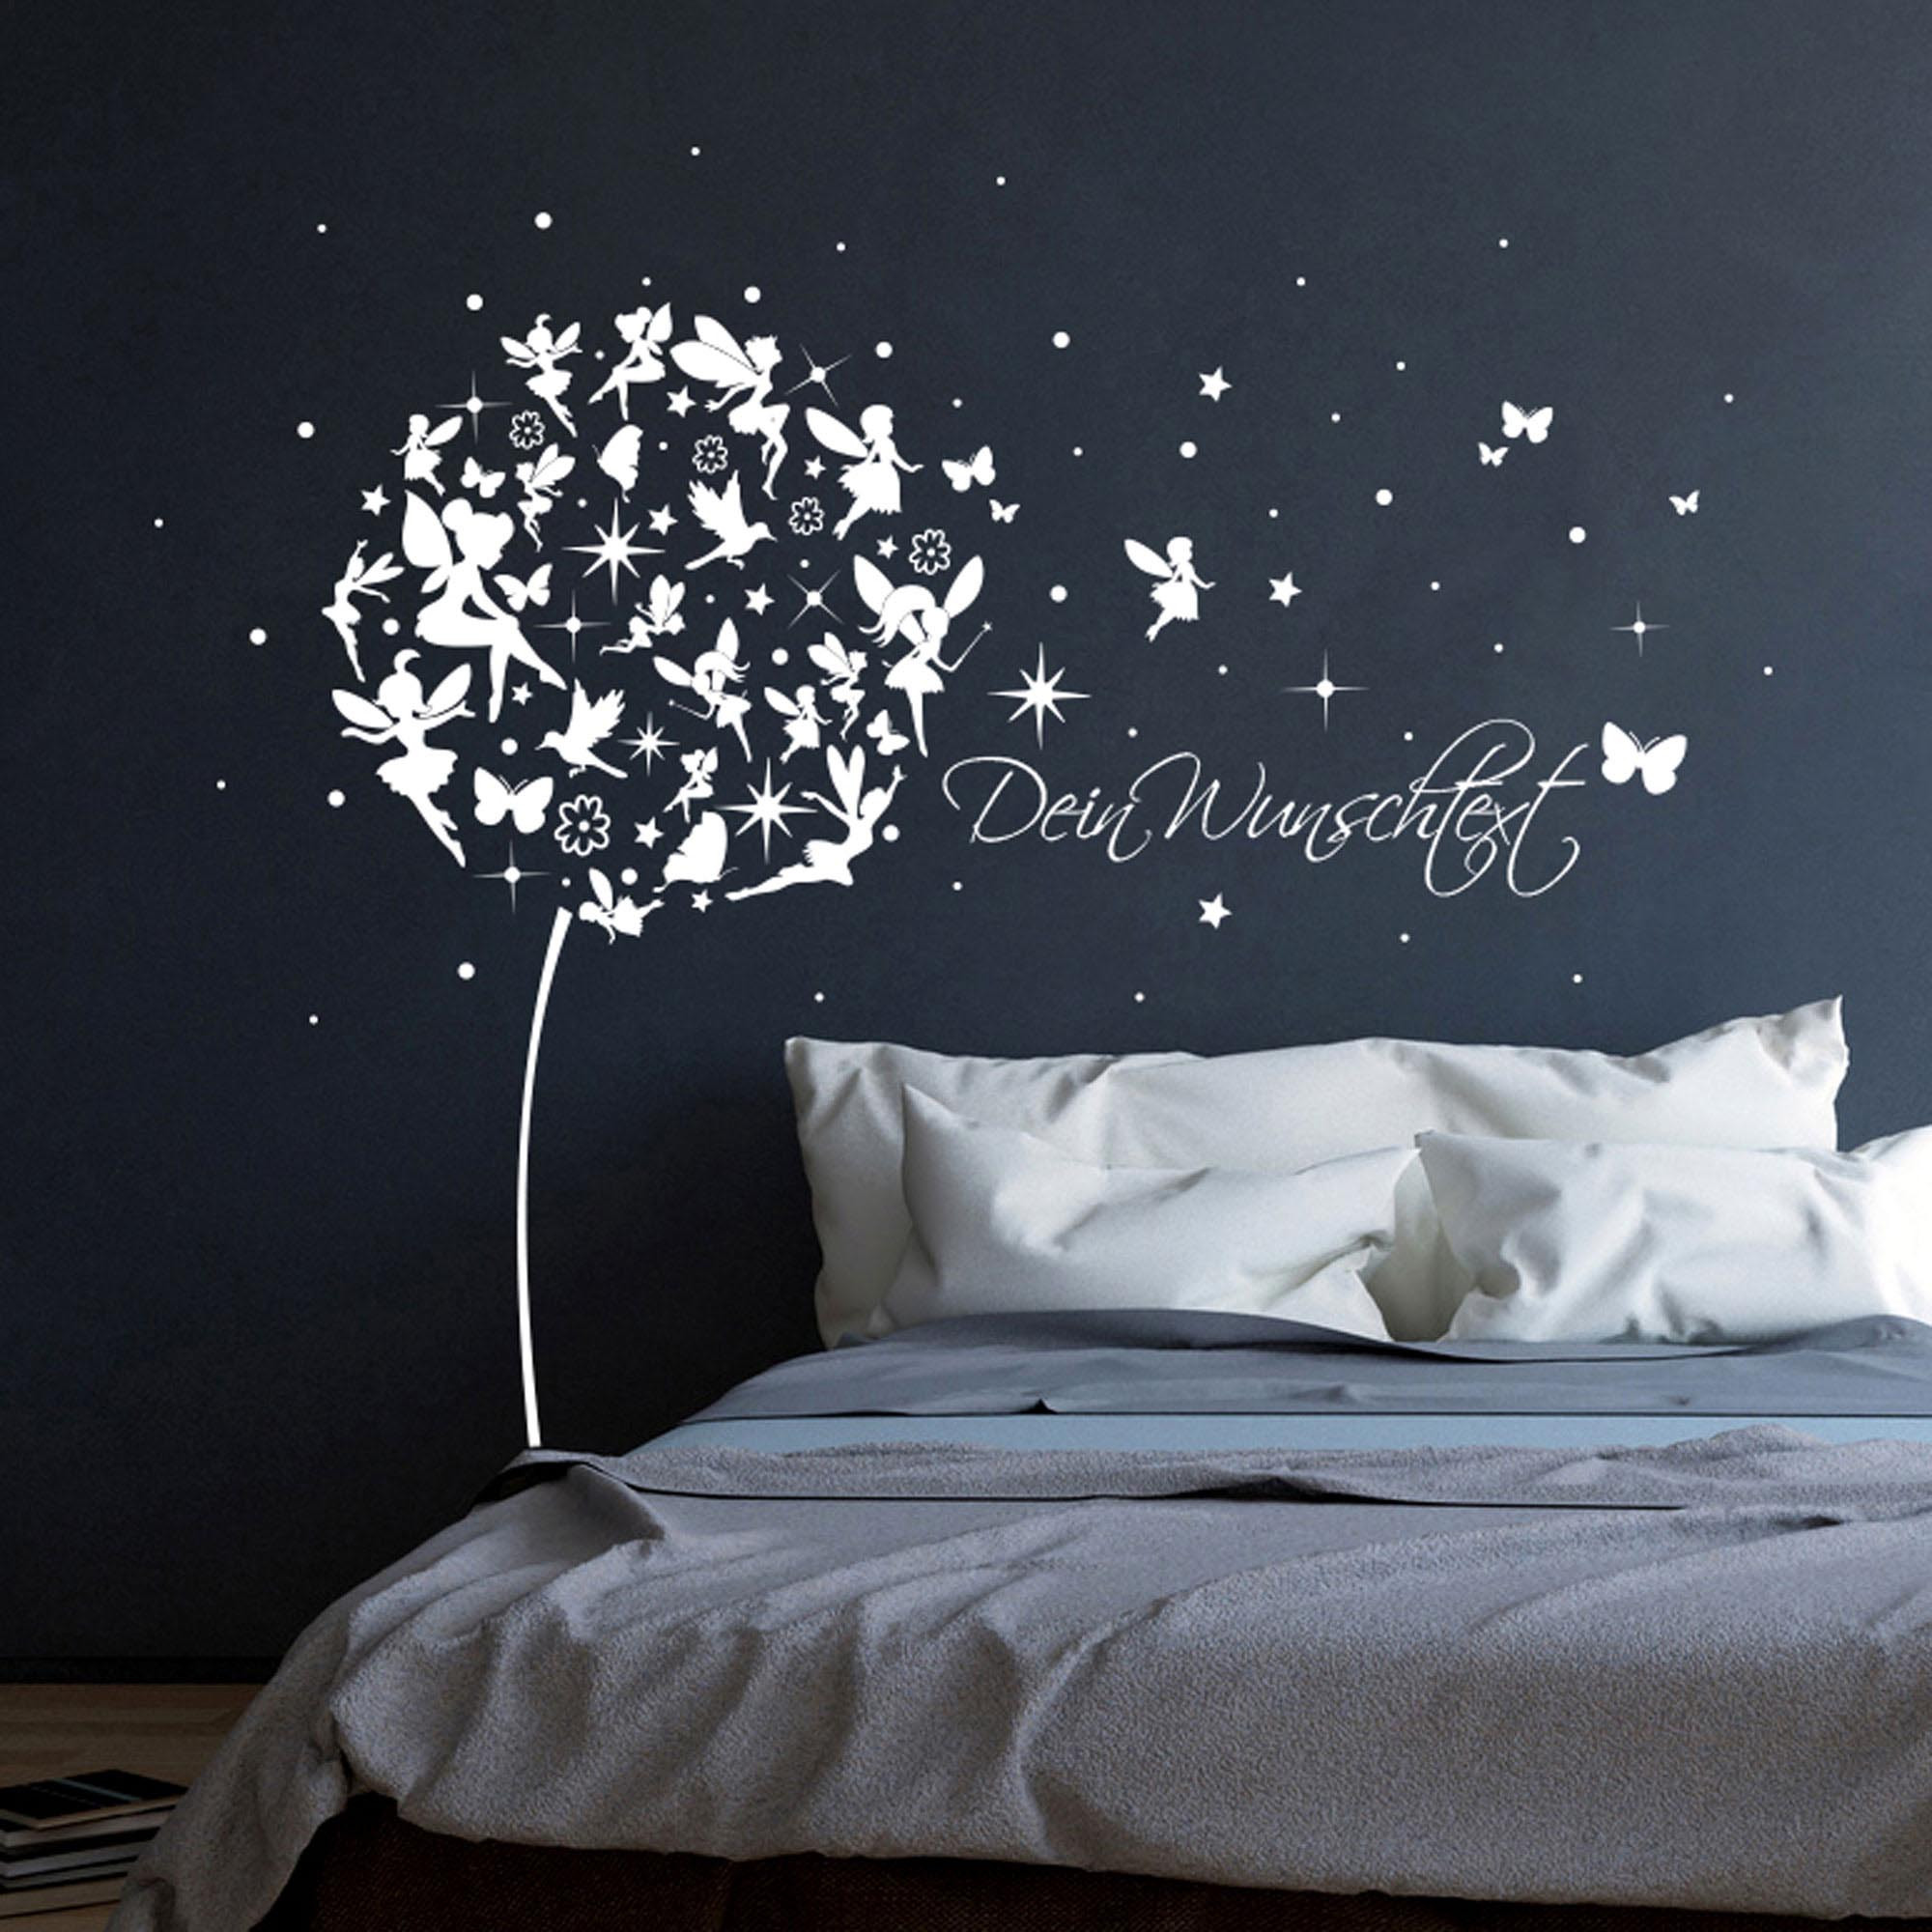 Wall Decal Dandelion With Fairy Elf Butterflies And Stars - Wandtattoo Pusteblume Spruch